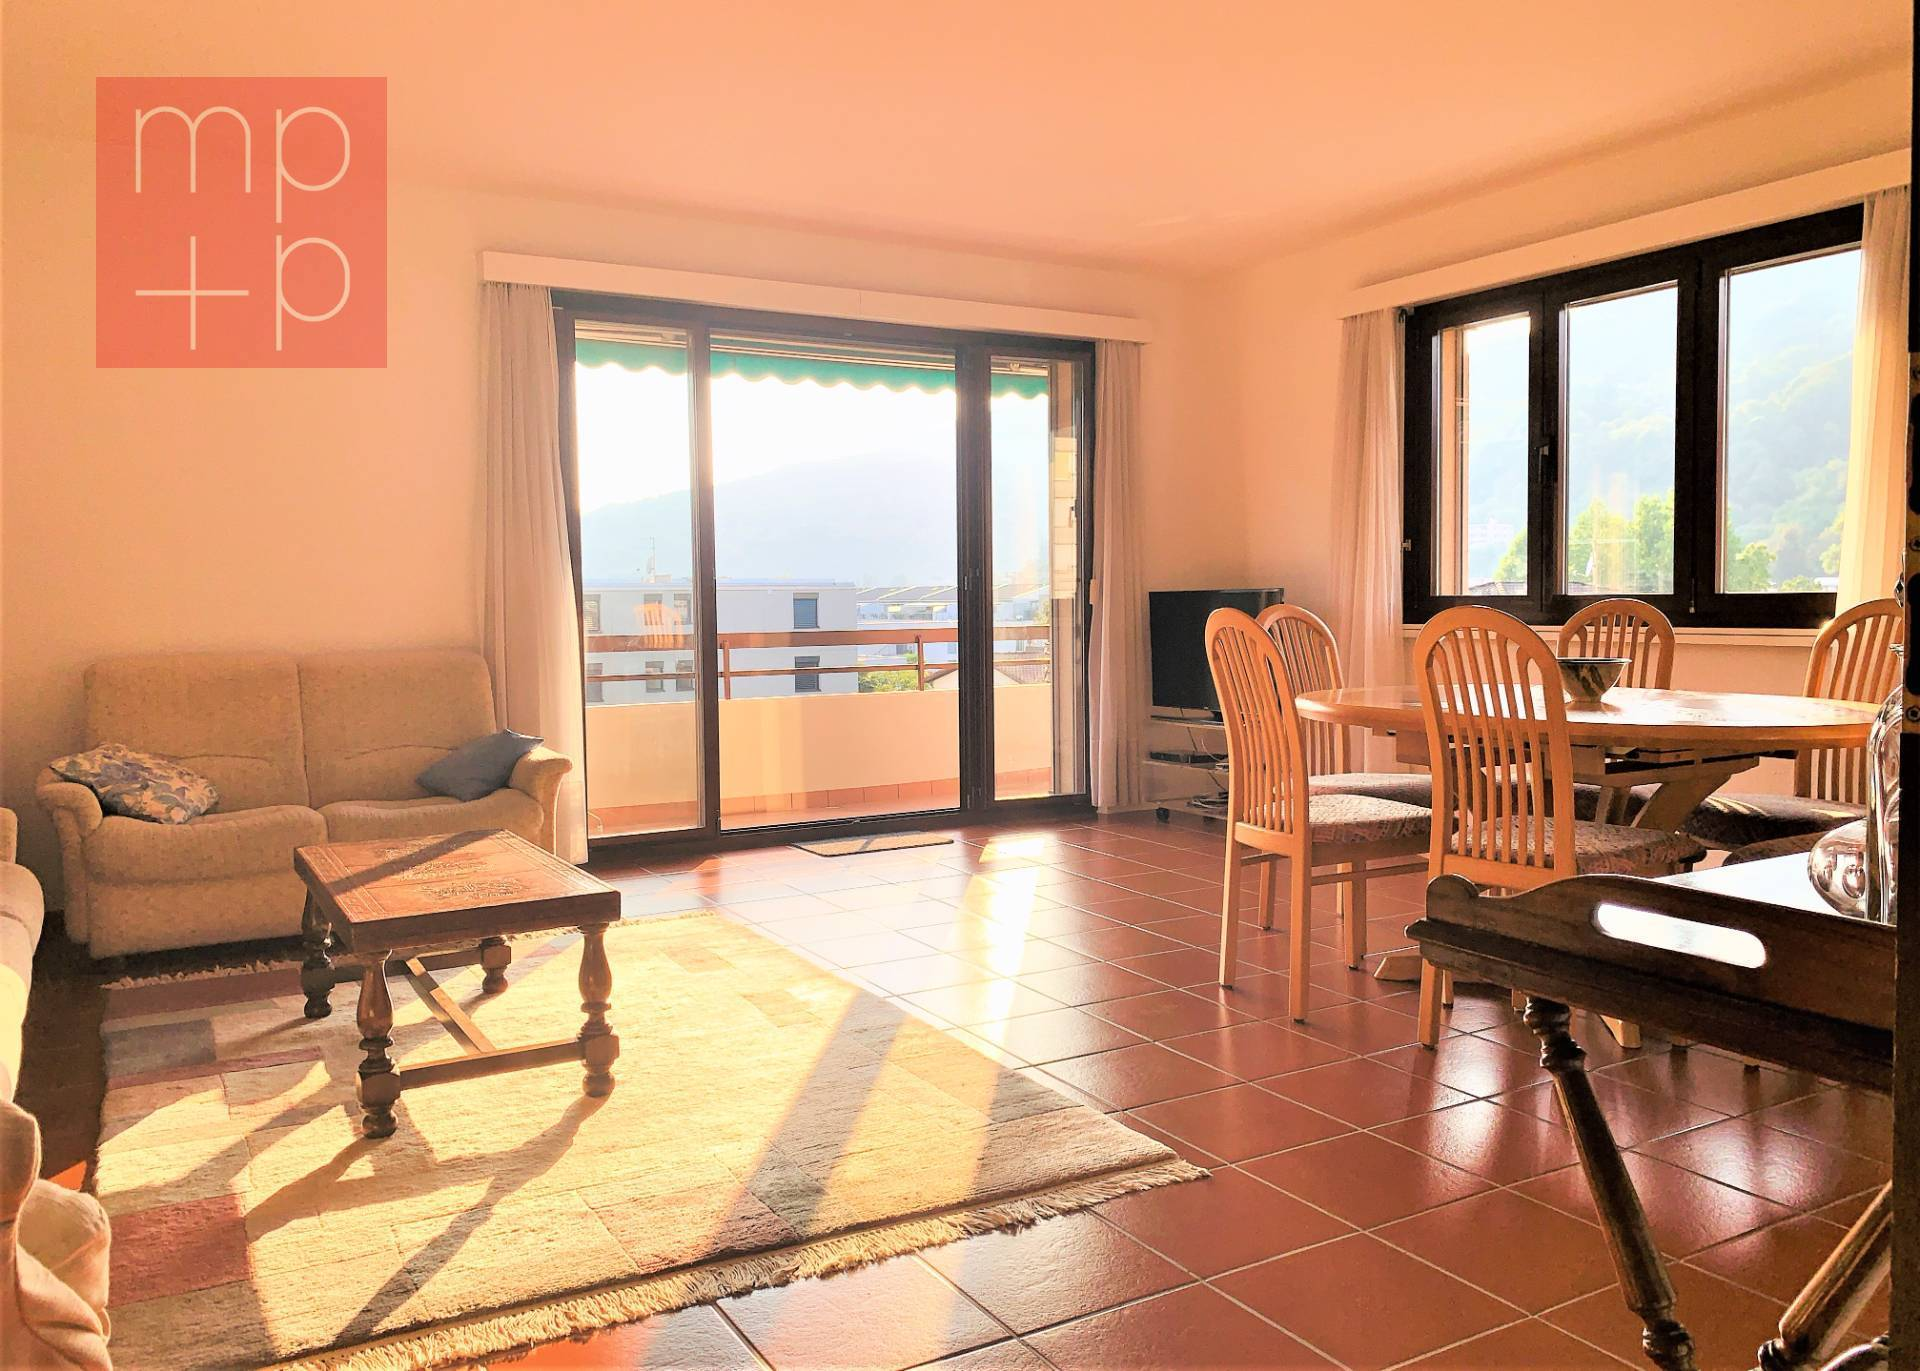 Apartment for Sale in Caslano